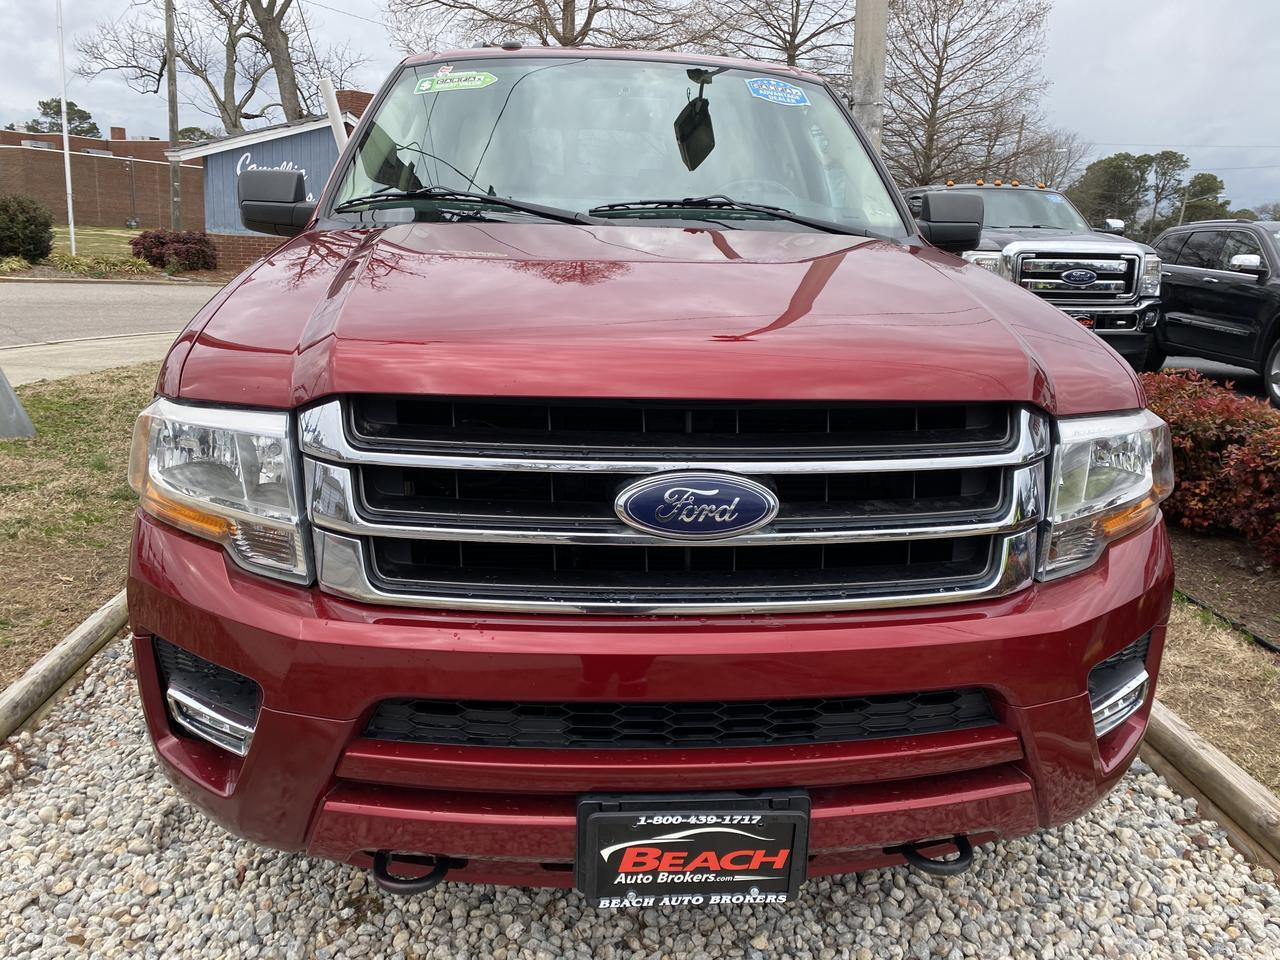 2016 FORD EXPEDITION EL XLT 4X4 , WARRANTY, LEATHER, NAV, HEATED/COOLED SEATS, 3RD ROW, BACKUP CAM, 1 OWNER,CLEAN CARFAX! Norfolk VA